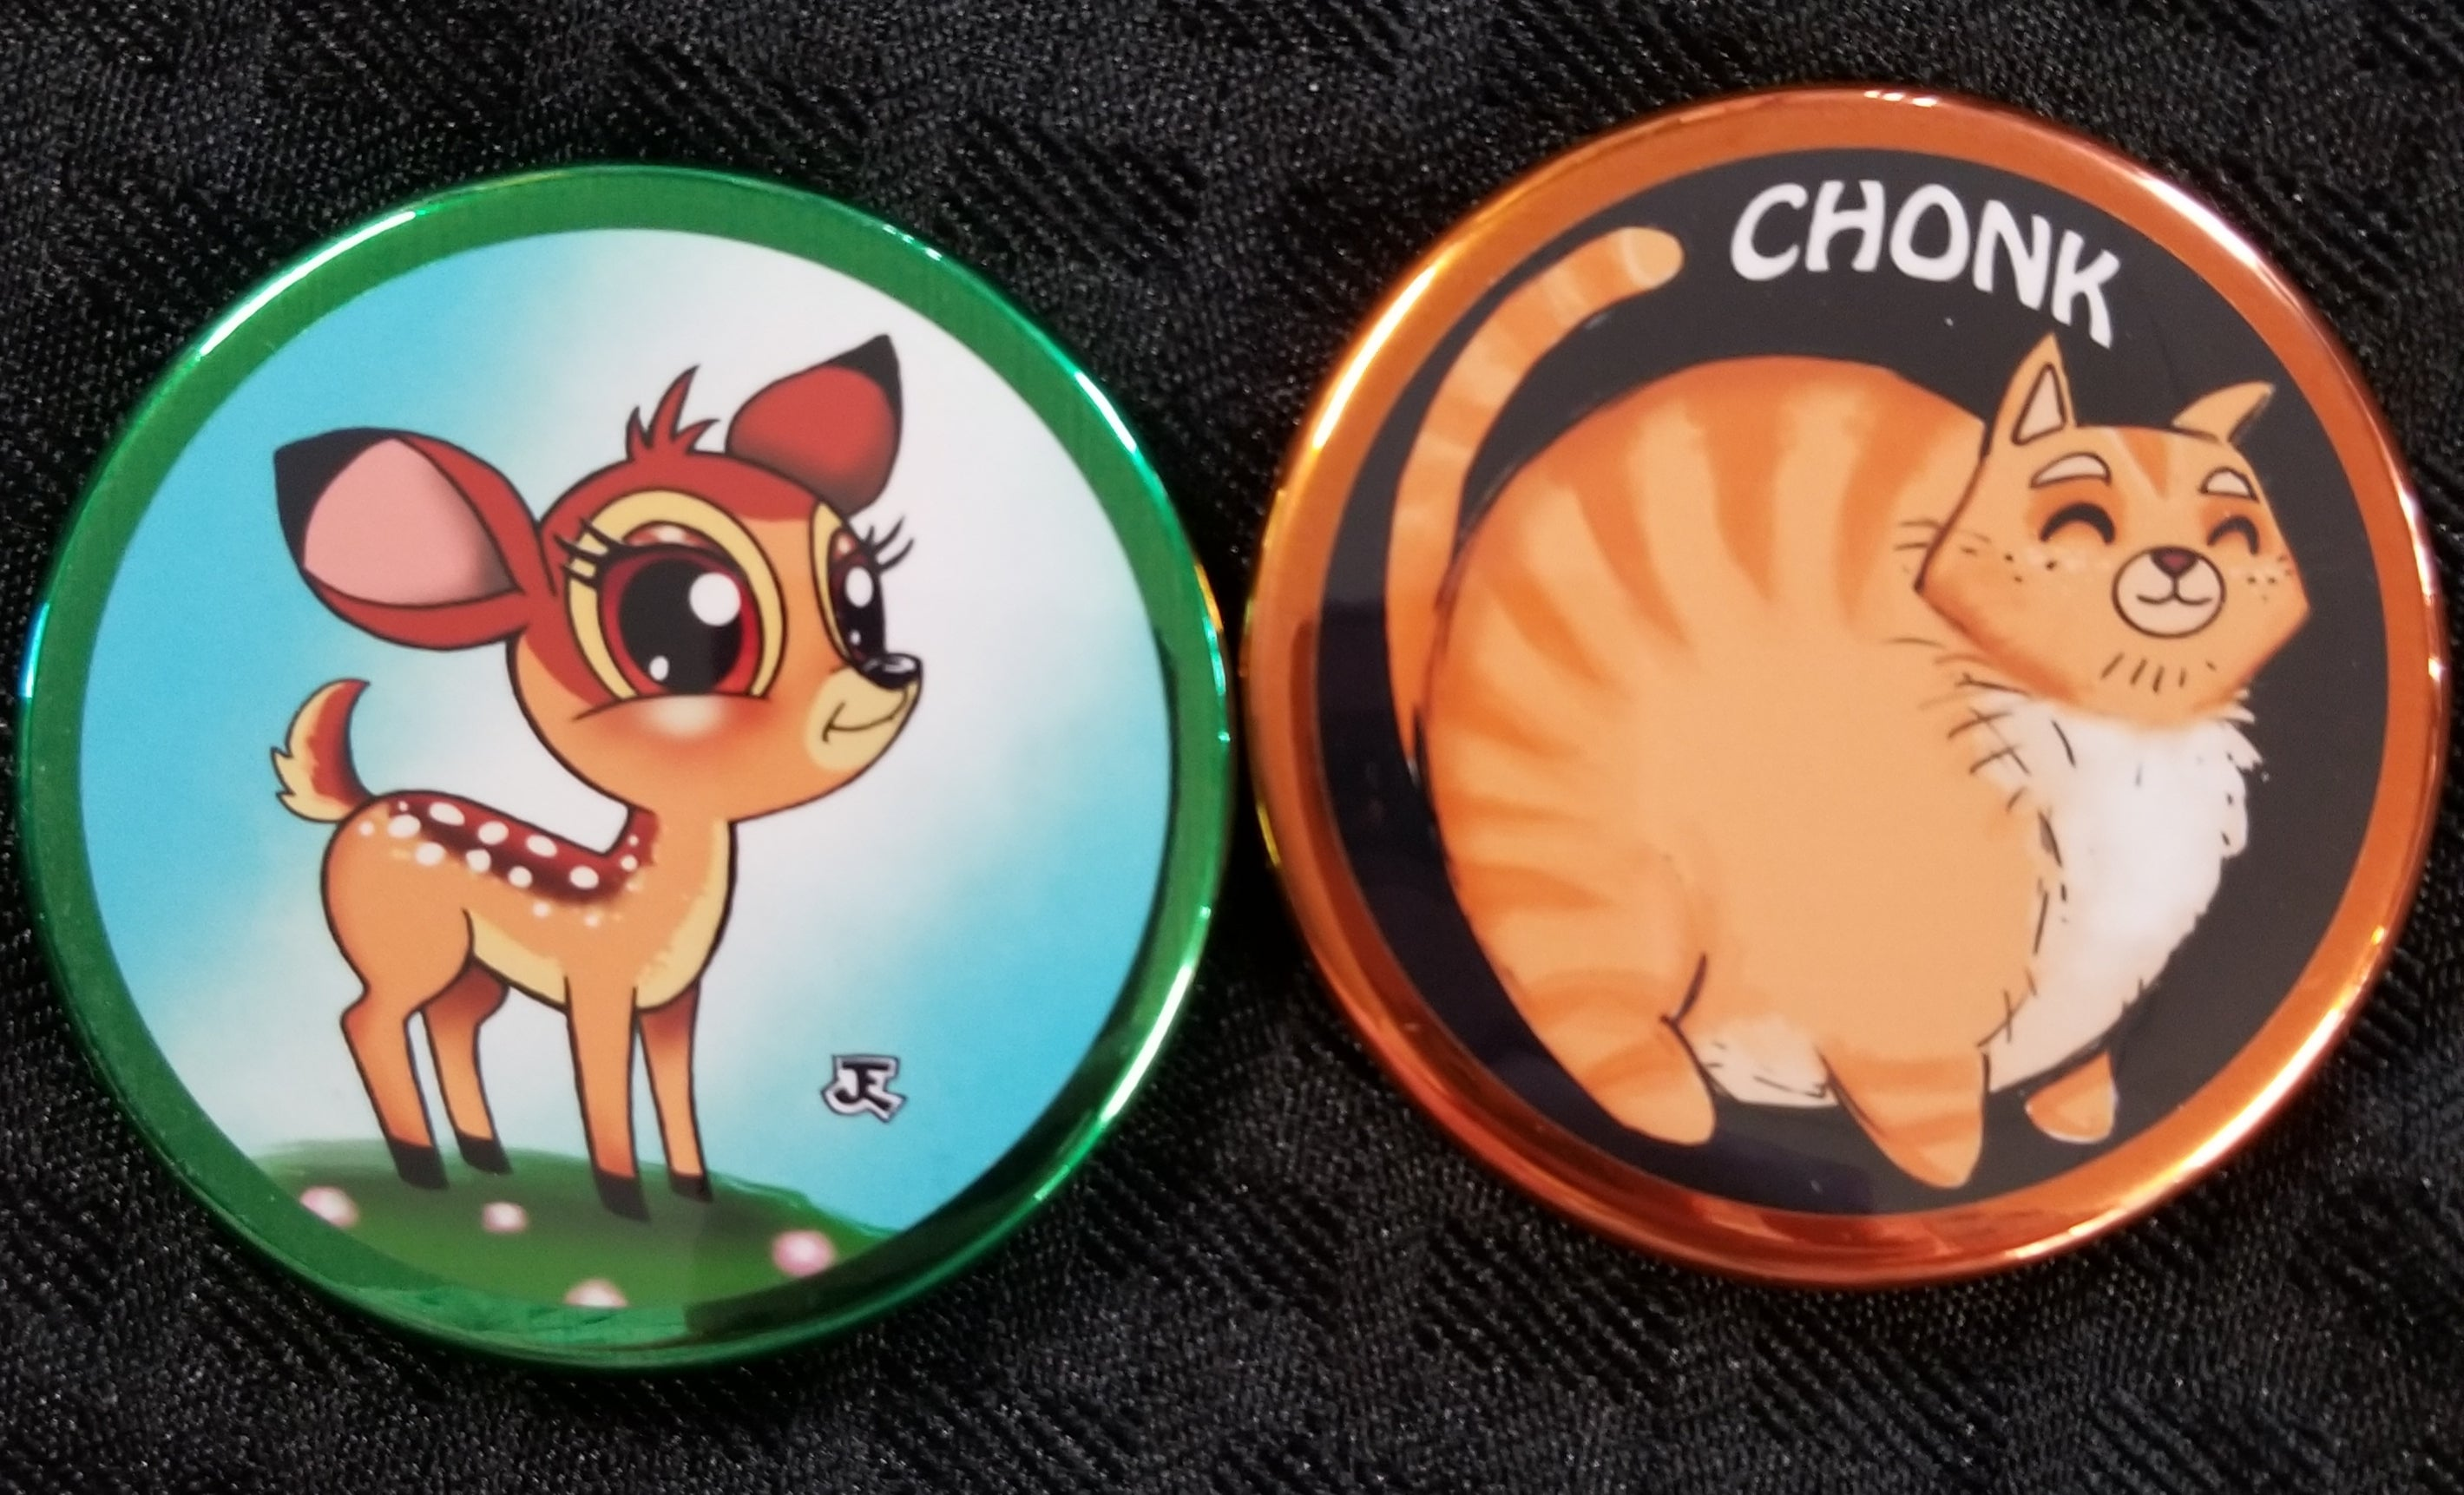 Chonk cat and cute deer magnet set